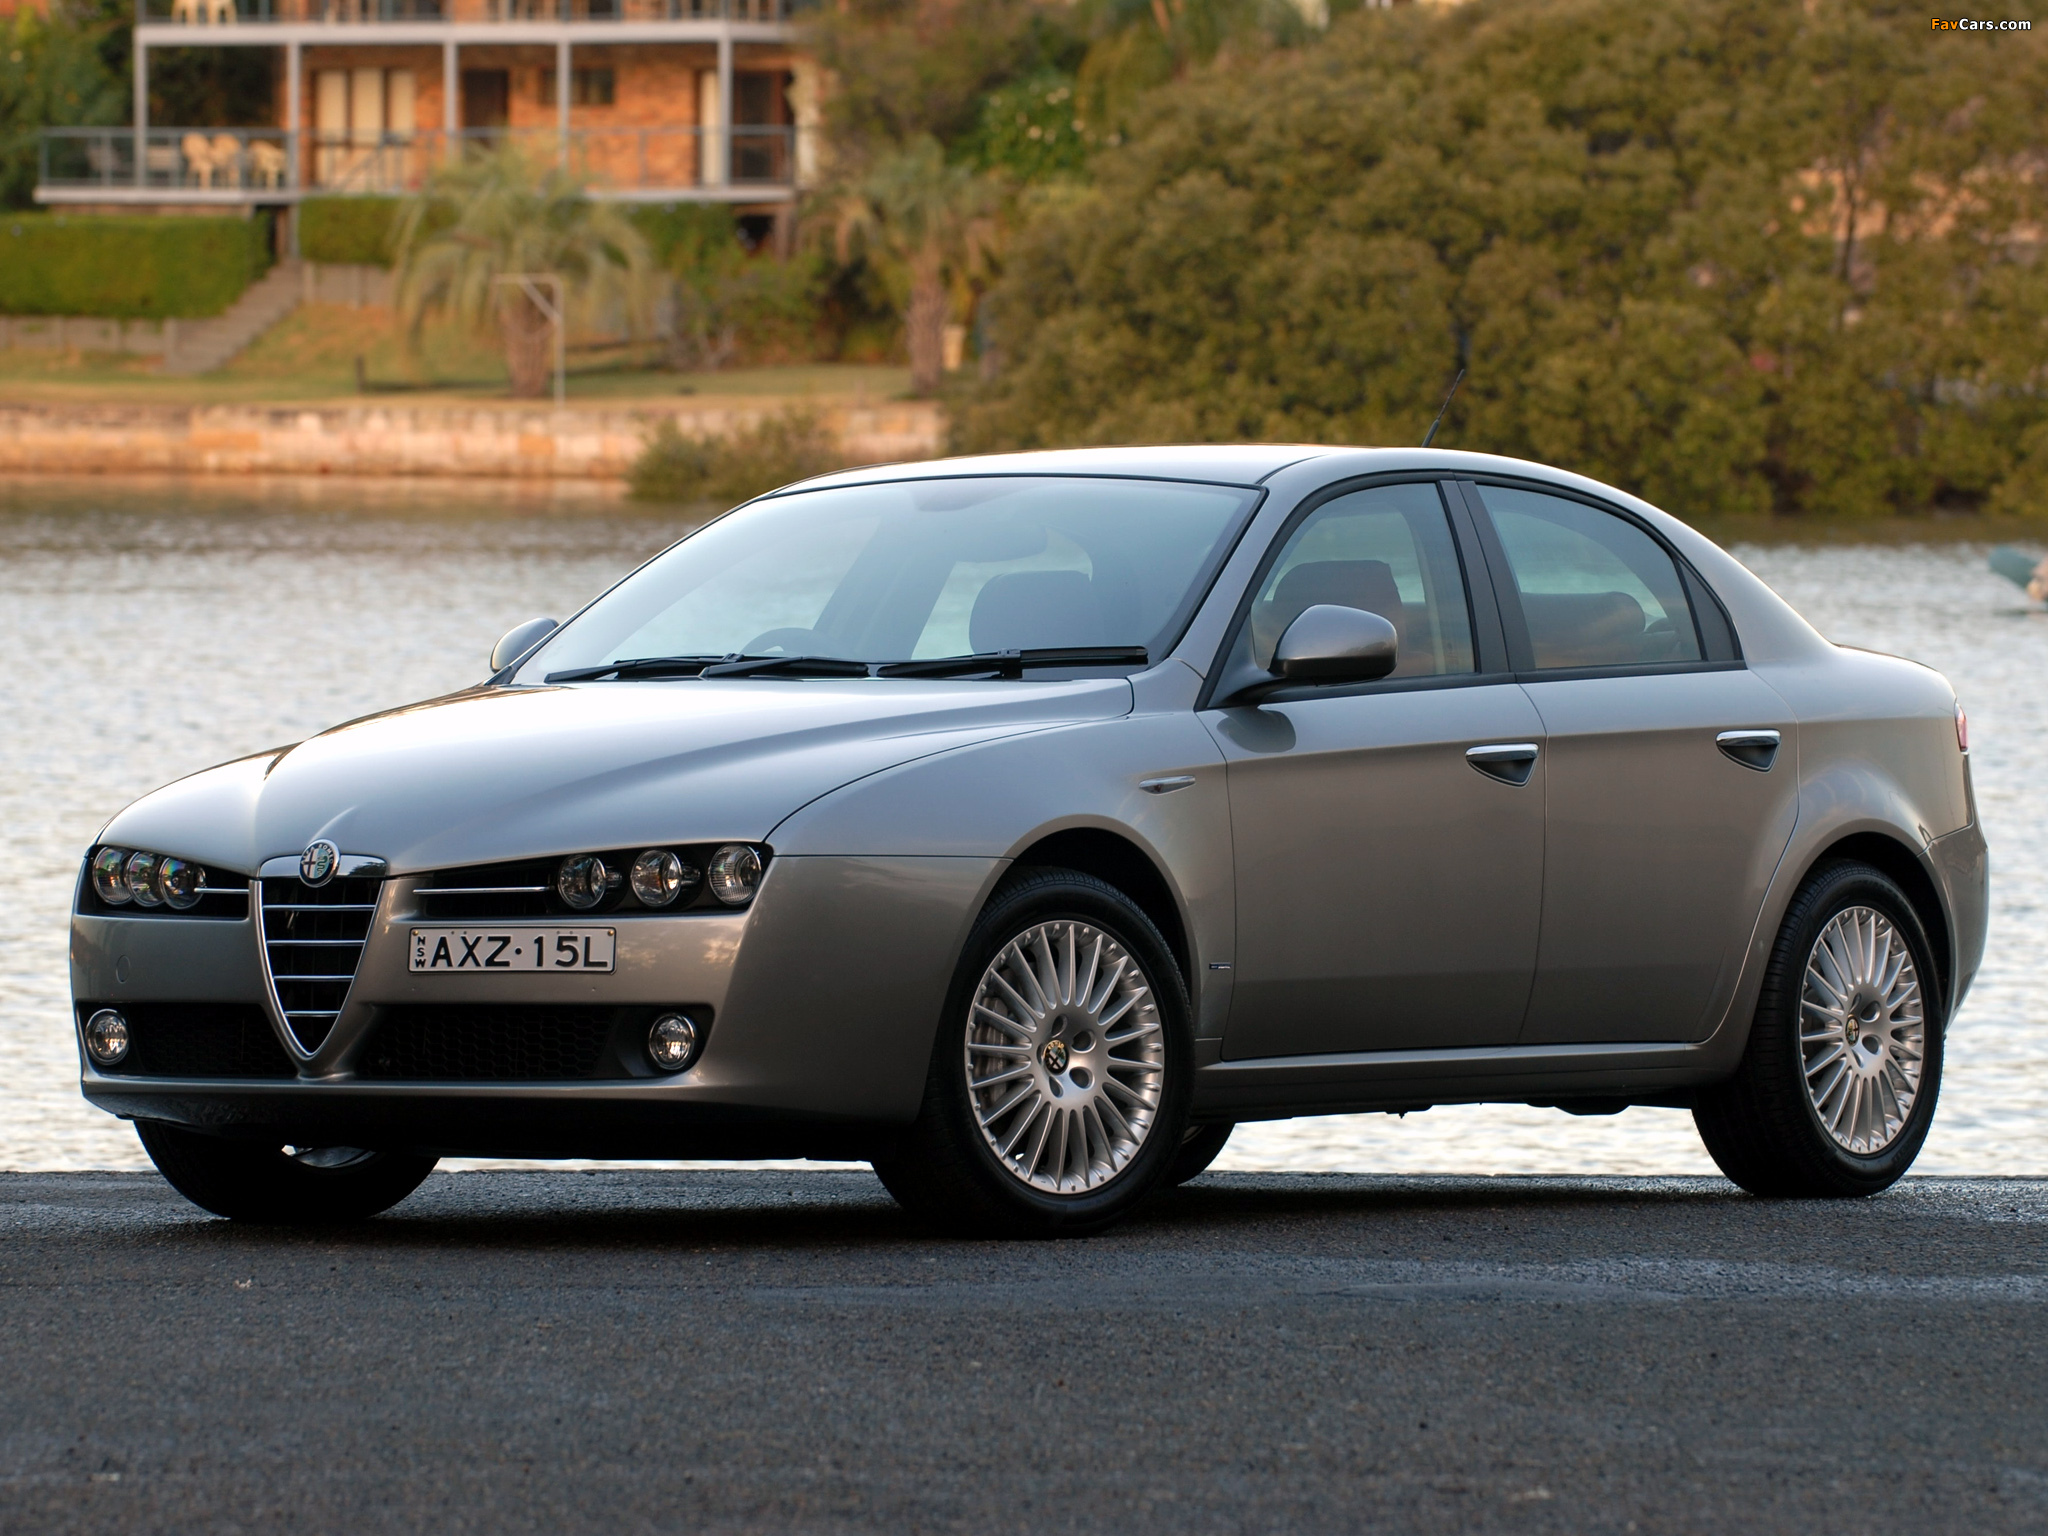 alfa romeo 159 2 4 jtdm au spec 939a 2006 2008 pictures 2048x1536. Black Bedroom Furniture Sets. Home Design Ideas